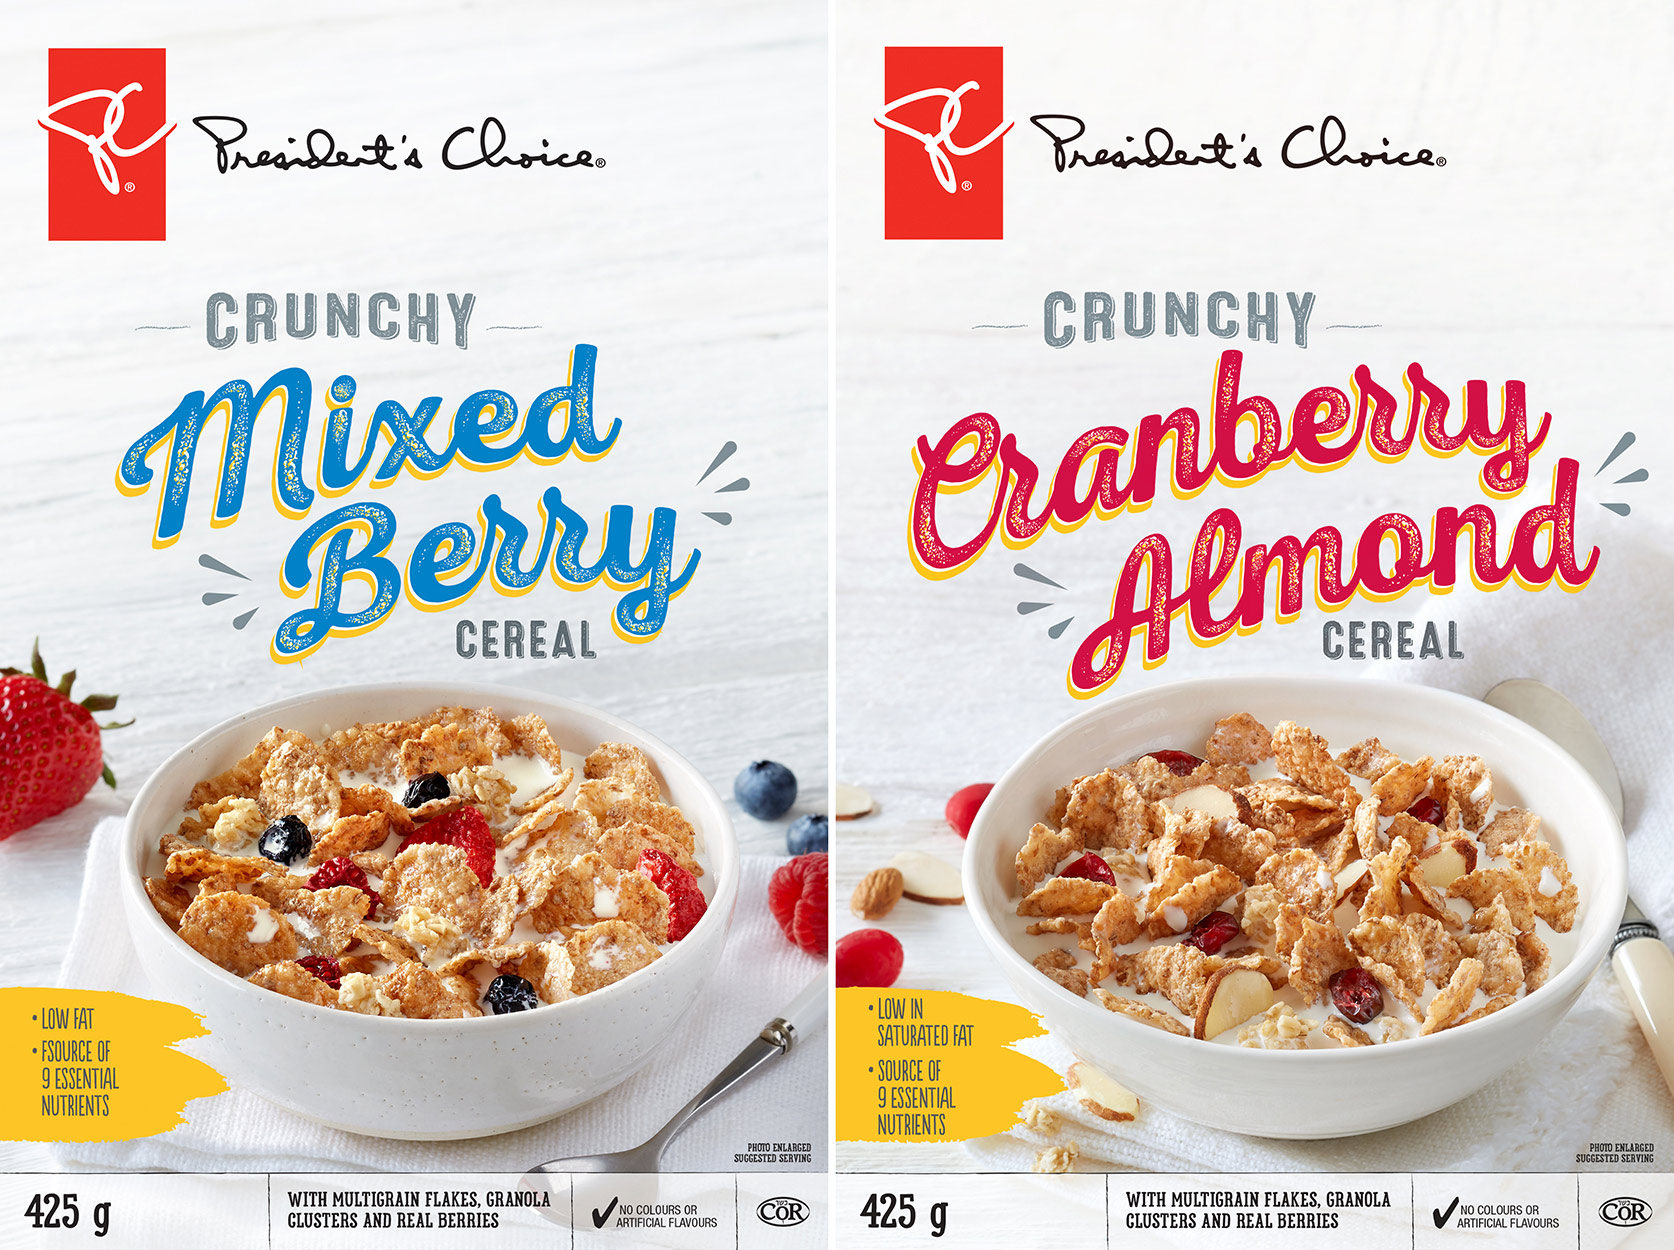 630454_PC_CrunchyCereal_CranberryAlmond_Final_630454_PC_CrunchyCereal_MixedBerry-Final_DUO_WEB